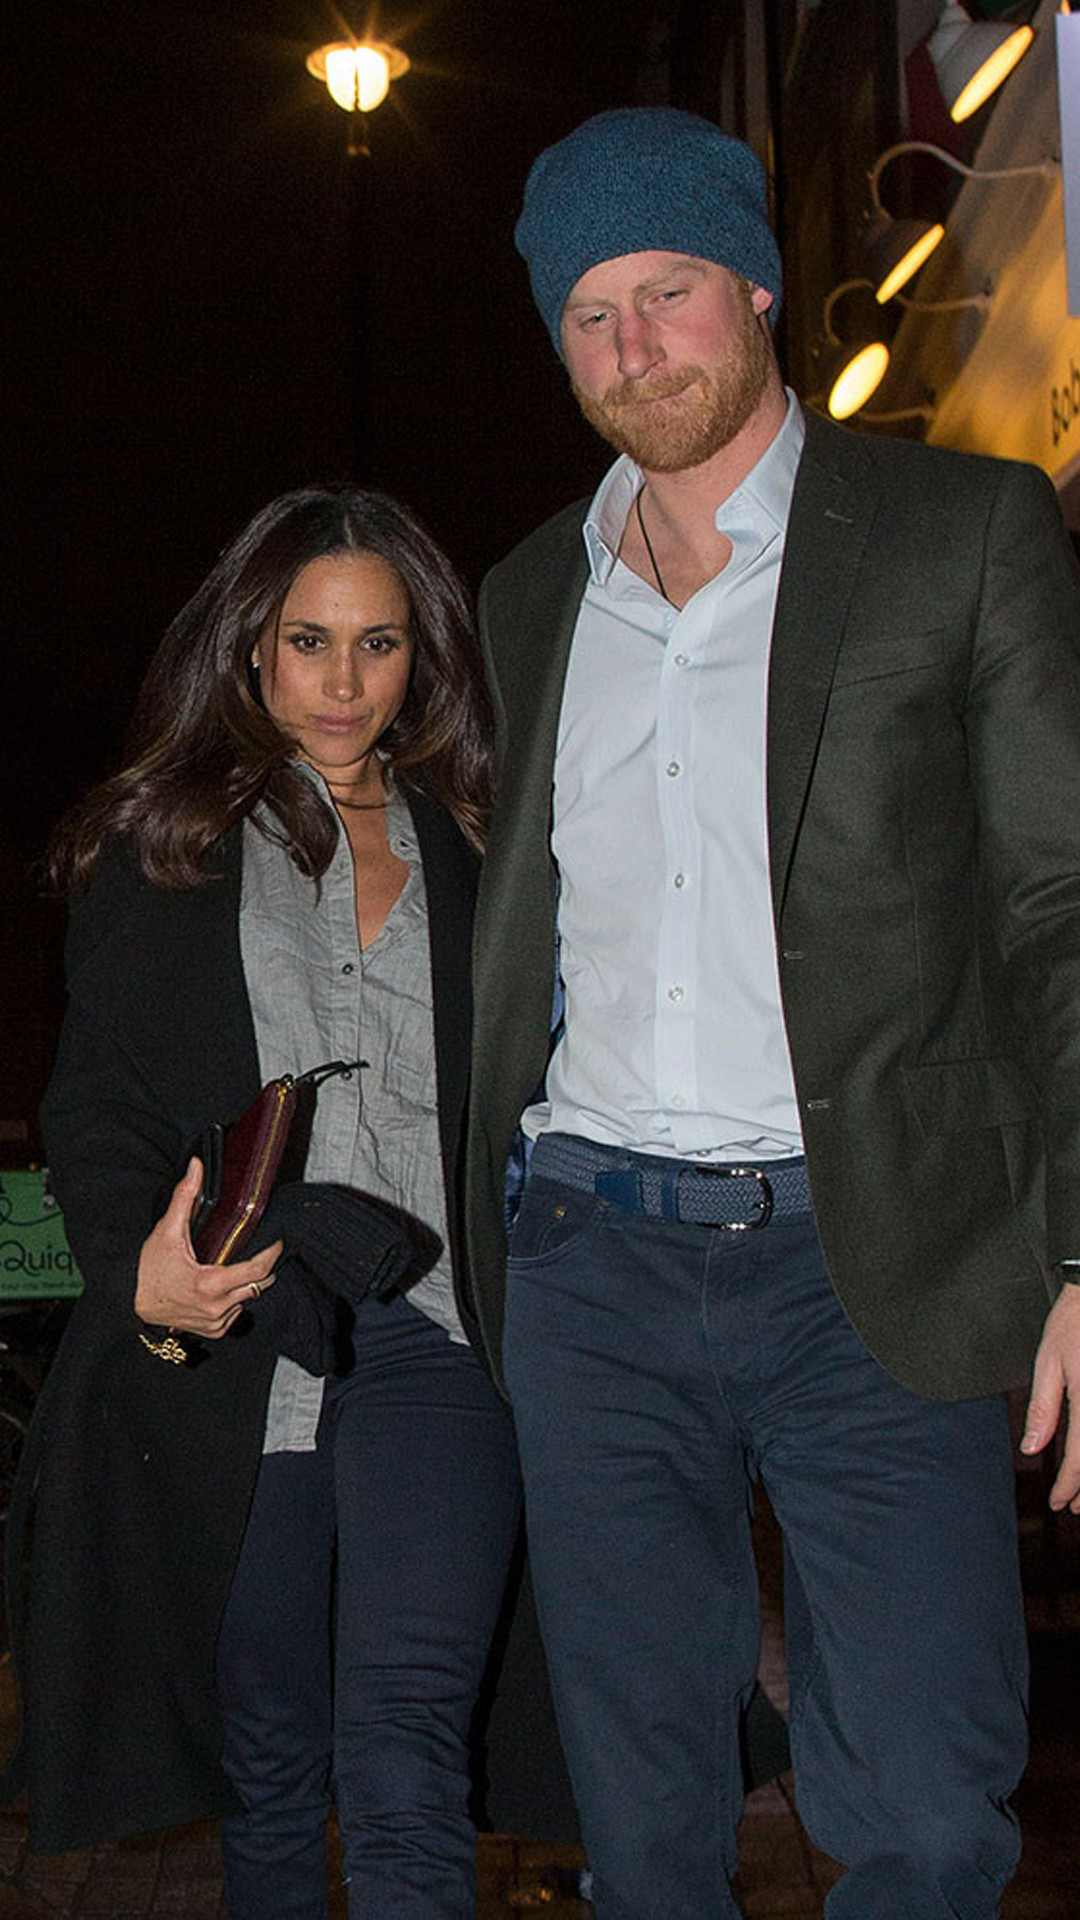 Prince Harry Had A Crush On Meghan Markle 2 Years Before They Met